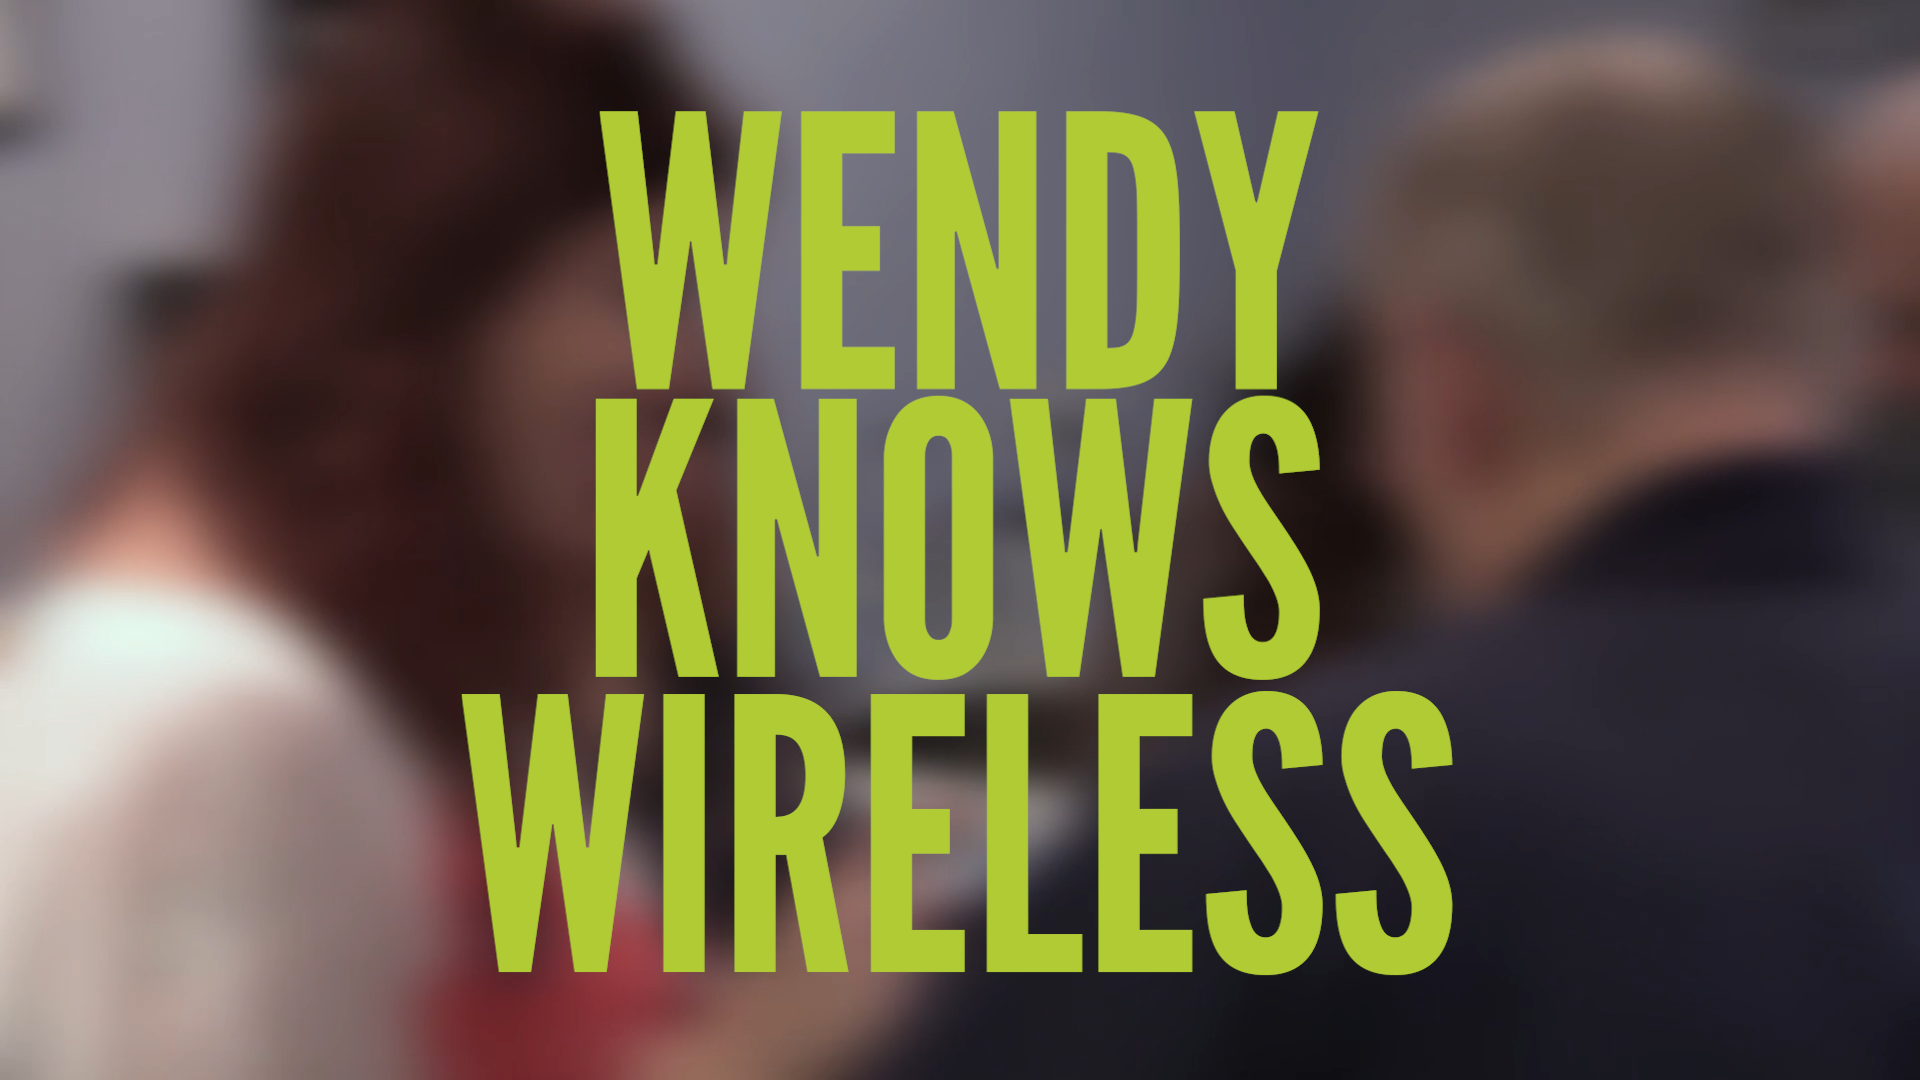 Wendy Knows Wireless.png